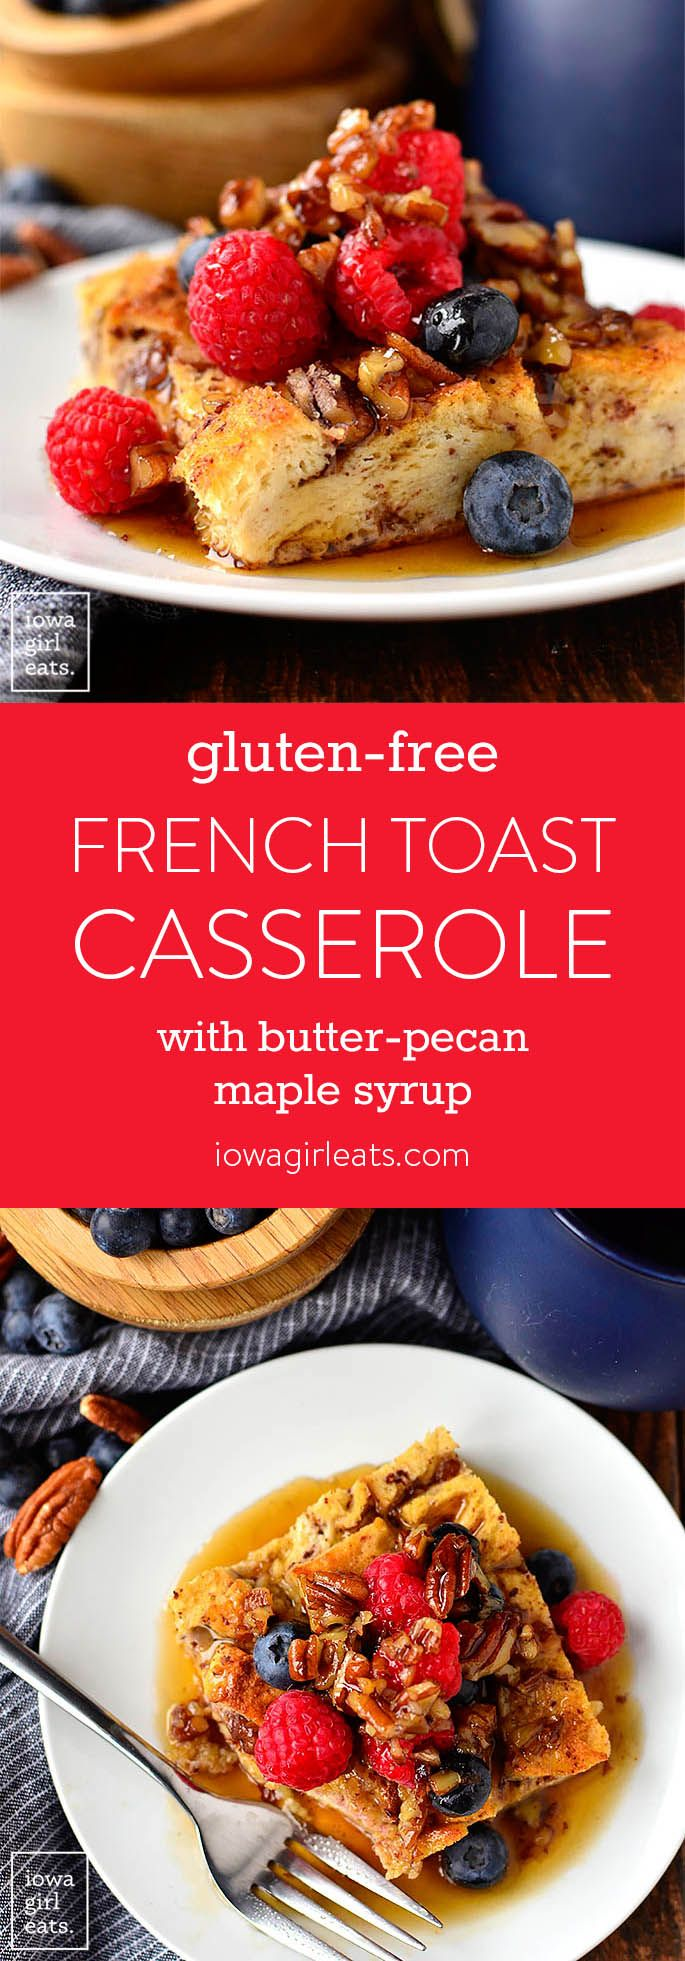 Gluten-Free French Toast Casserole with Butter-Pecan Maple Syrup is make ahead and perfect for feeding a crowd. This gluten-free breakfast or brunch recipe will WOW! | iowagirleats.com #glutenfree #ThinkFisher @FisherNuts